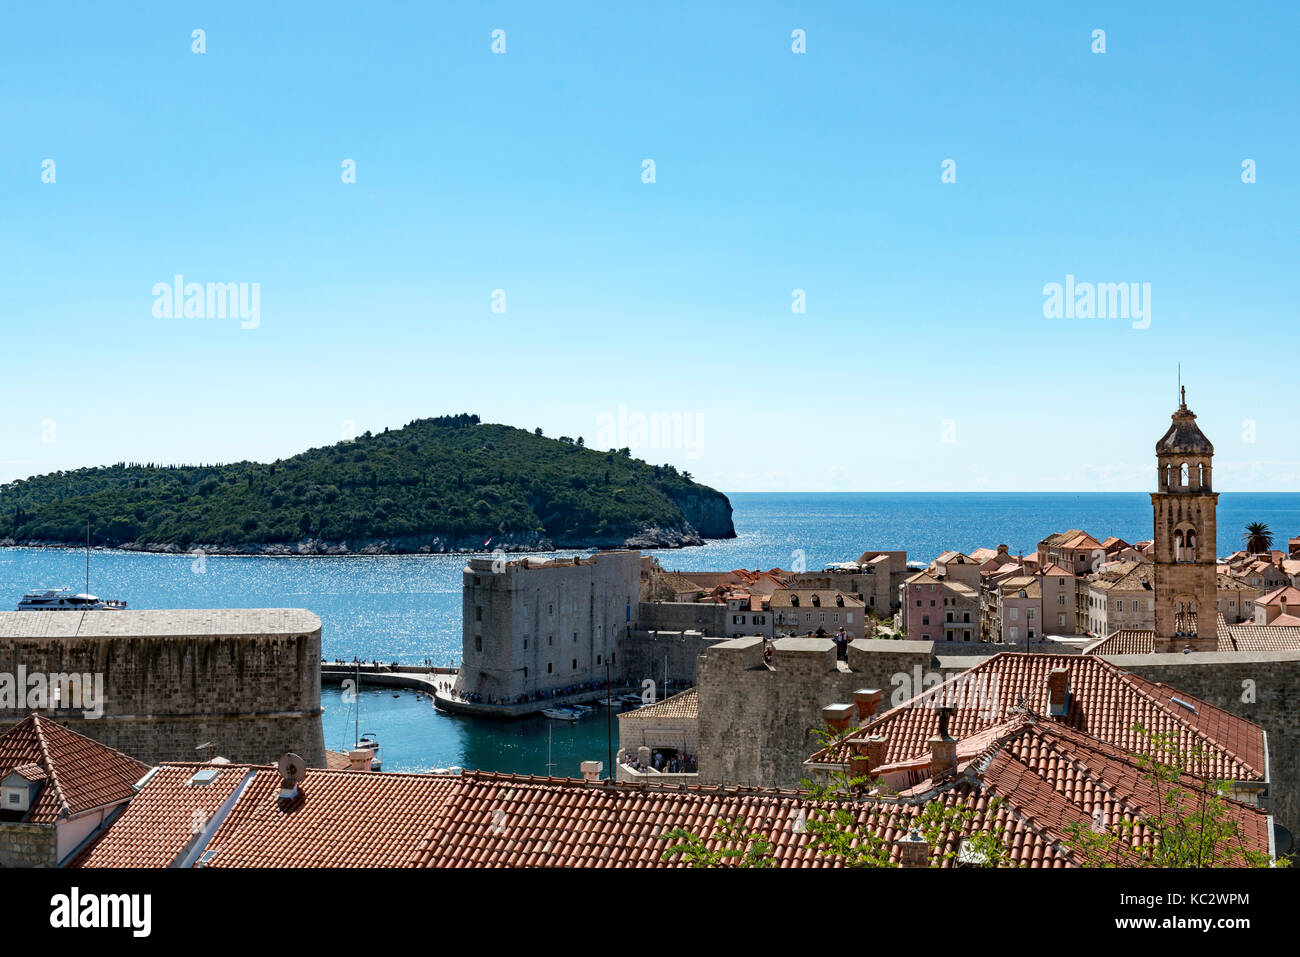 View from Dubrovnik cable car station - Stock Image